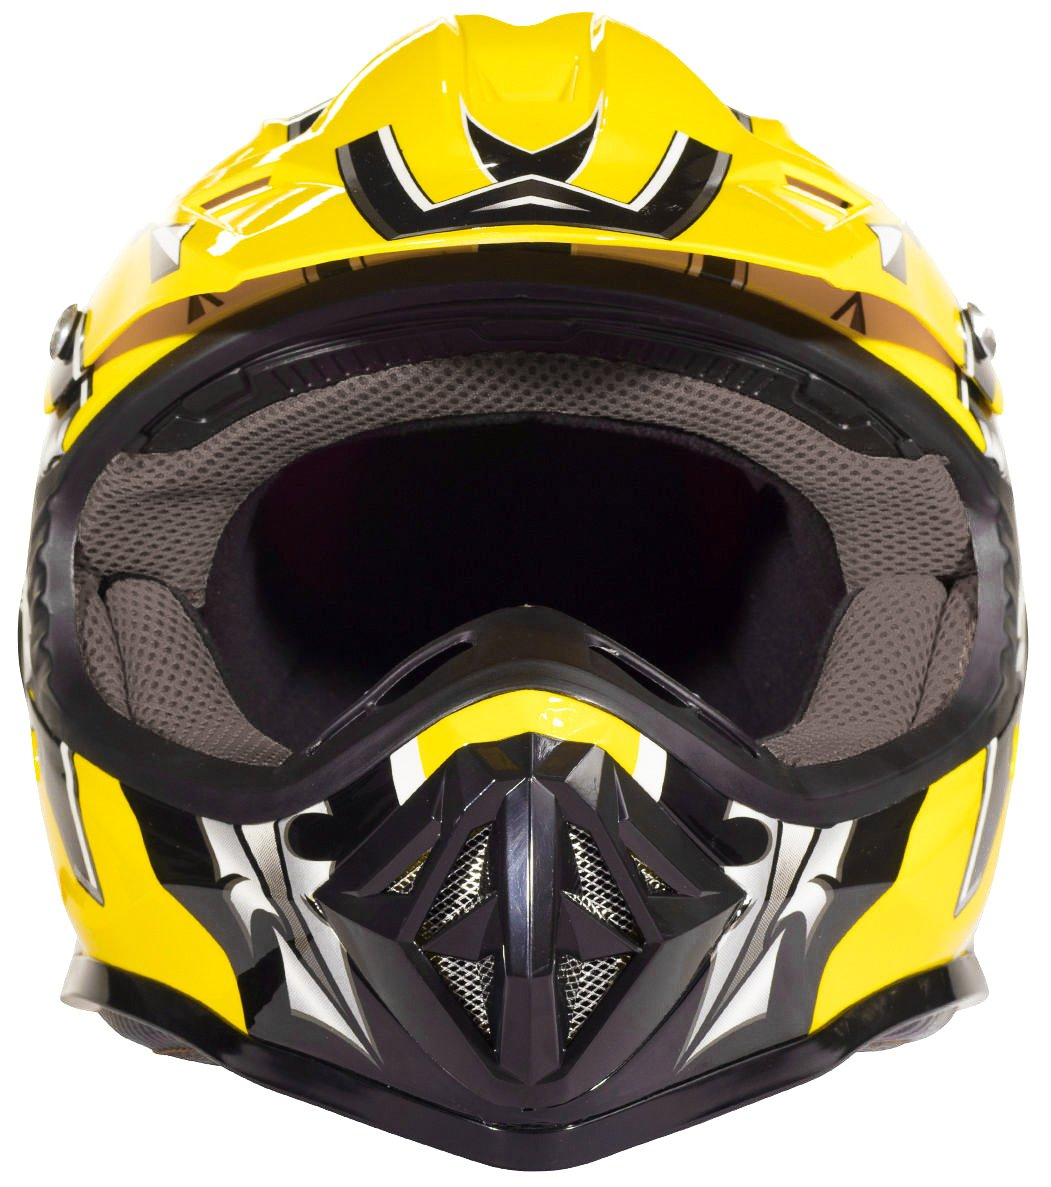 Youth Kids Offroad Gear Combo Helmet Gloves Goggles DOT Motocross ATV Dirt Bike MX Motorcycle Yellow X-